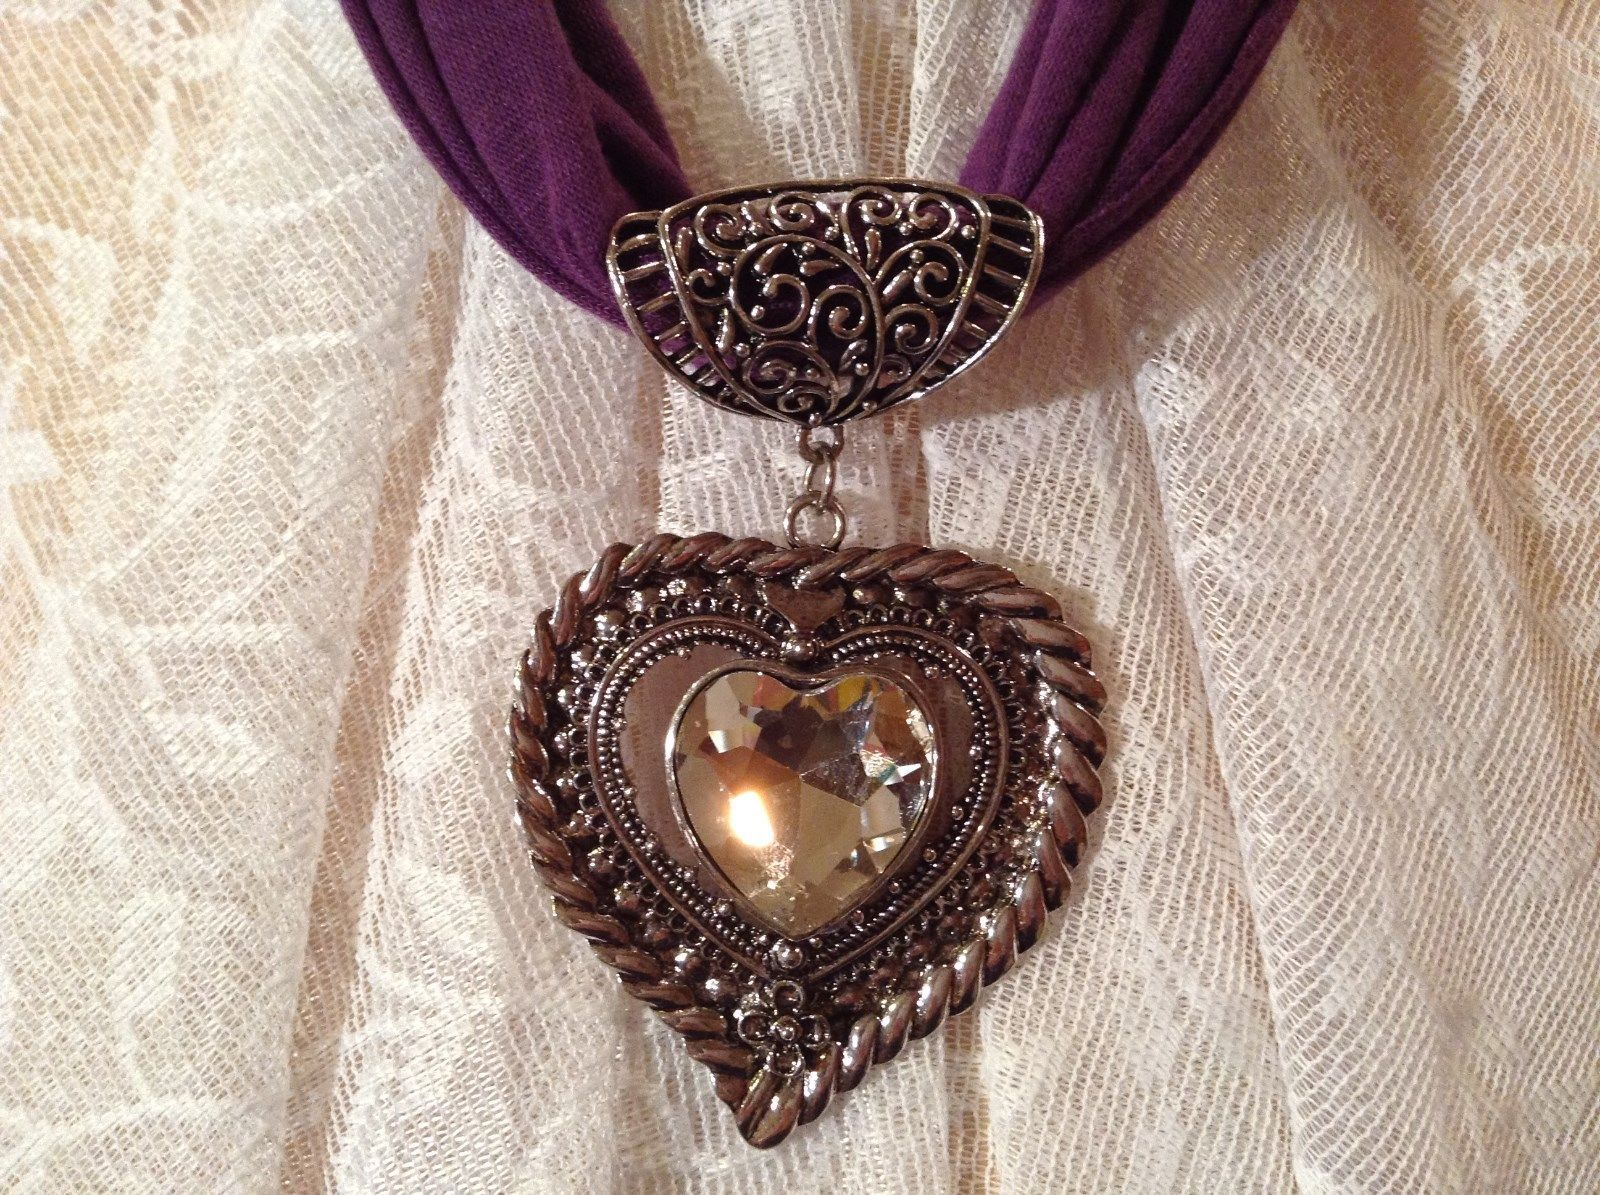 Heart Shaped with Tiny Flower at Bottom Large Heart Shaped Crystal Scarf Pendant